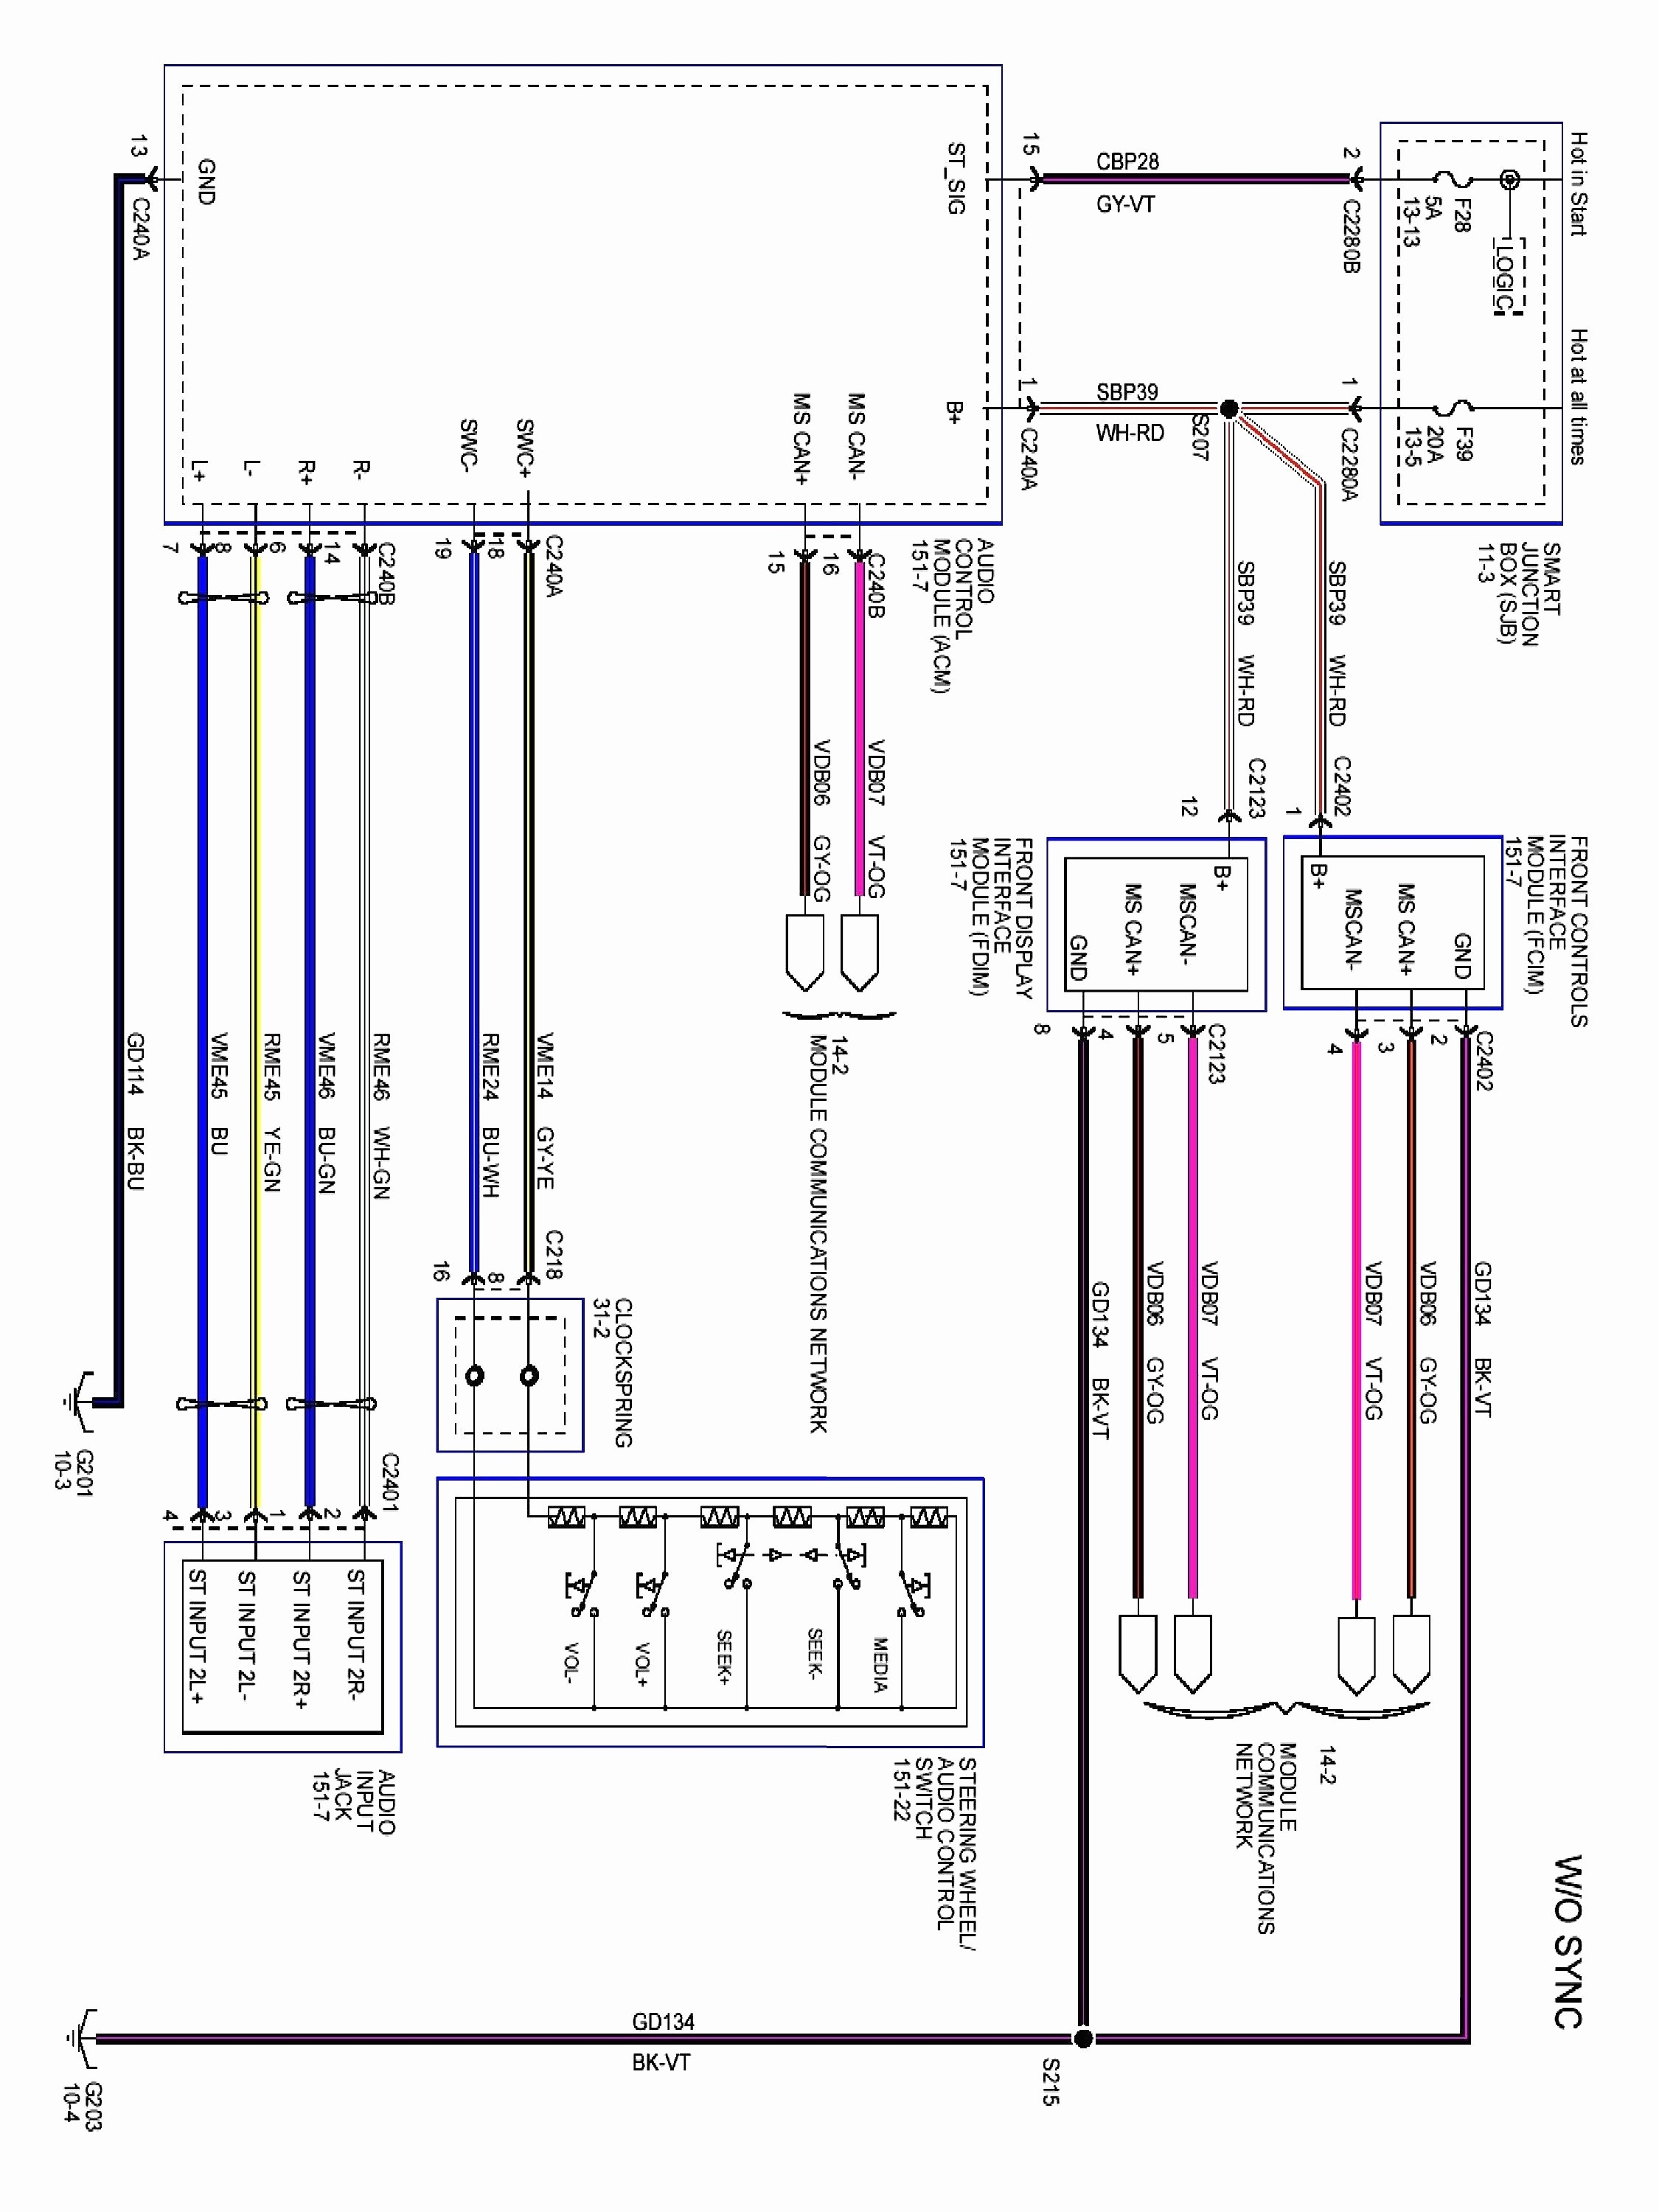 Kti Hydraulic Pump Wiring Diagram Wiring Diagram For Amplifier Car Stereo Best Amplifier Wiring Wire Circuit Diagram Fresh P on 2005 Ford Escape Ignition Wiring Diagram